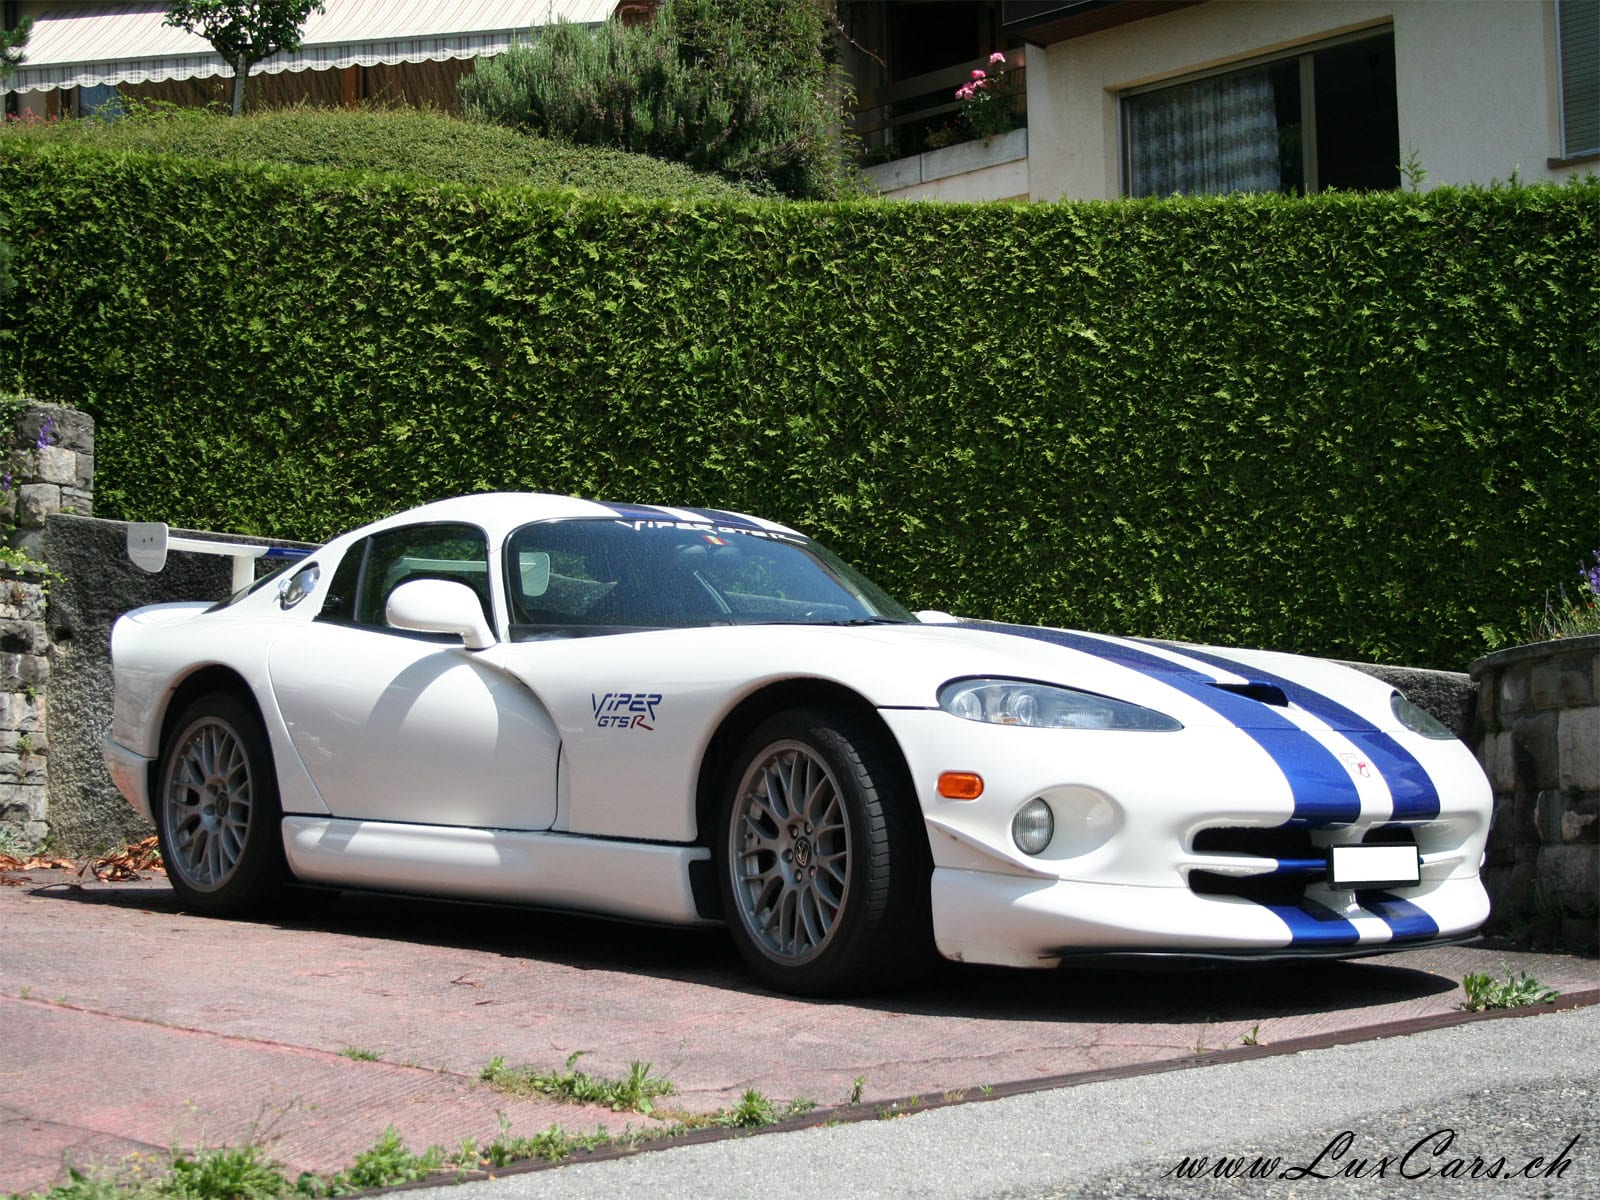 1996 Dodge Viper GTS Widescreen for desktop